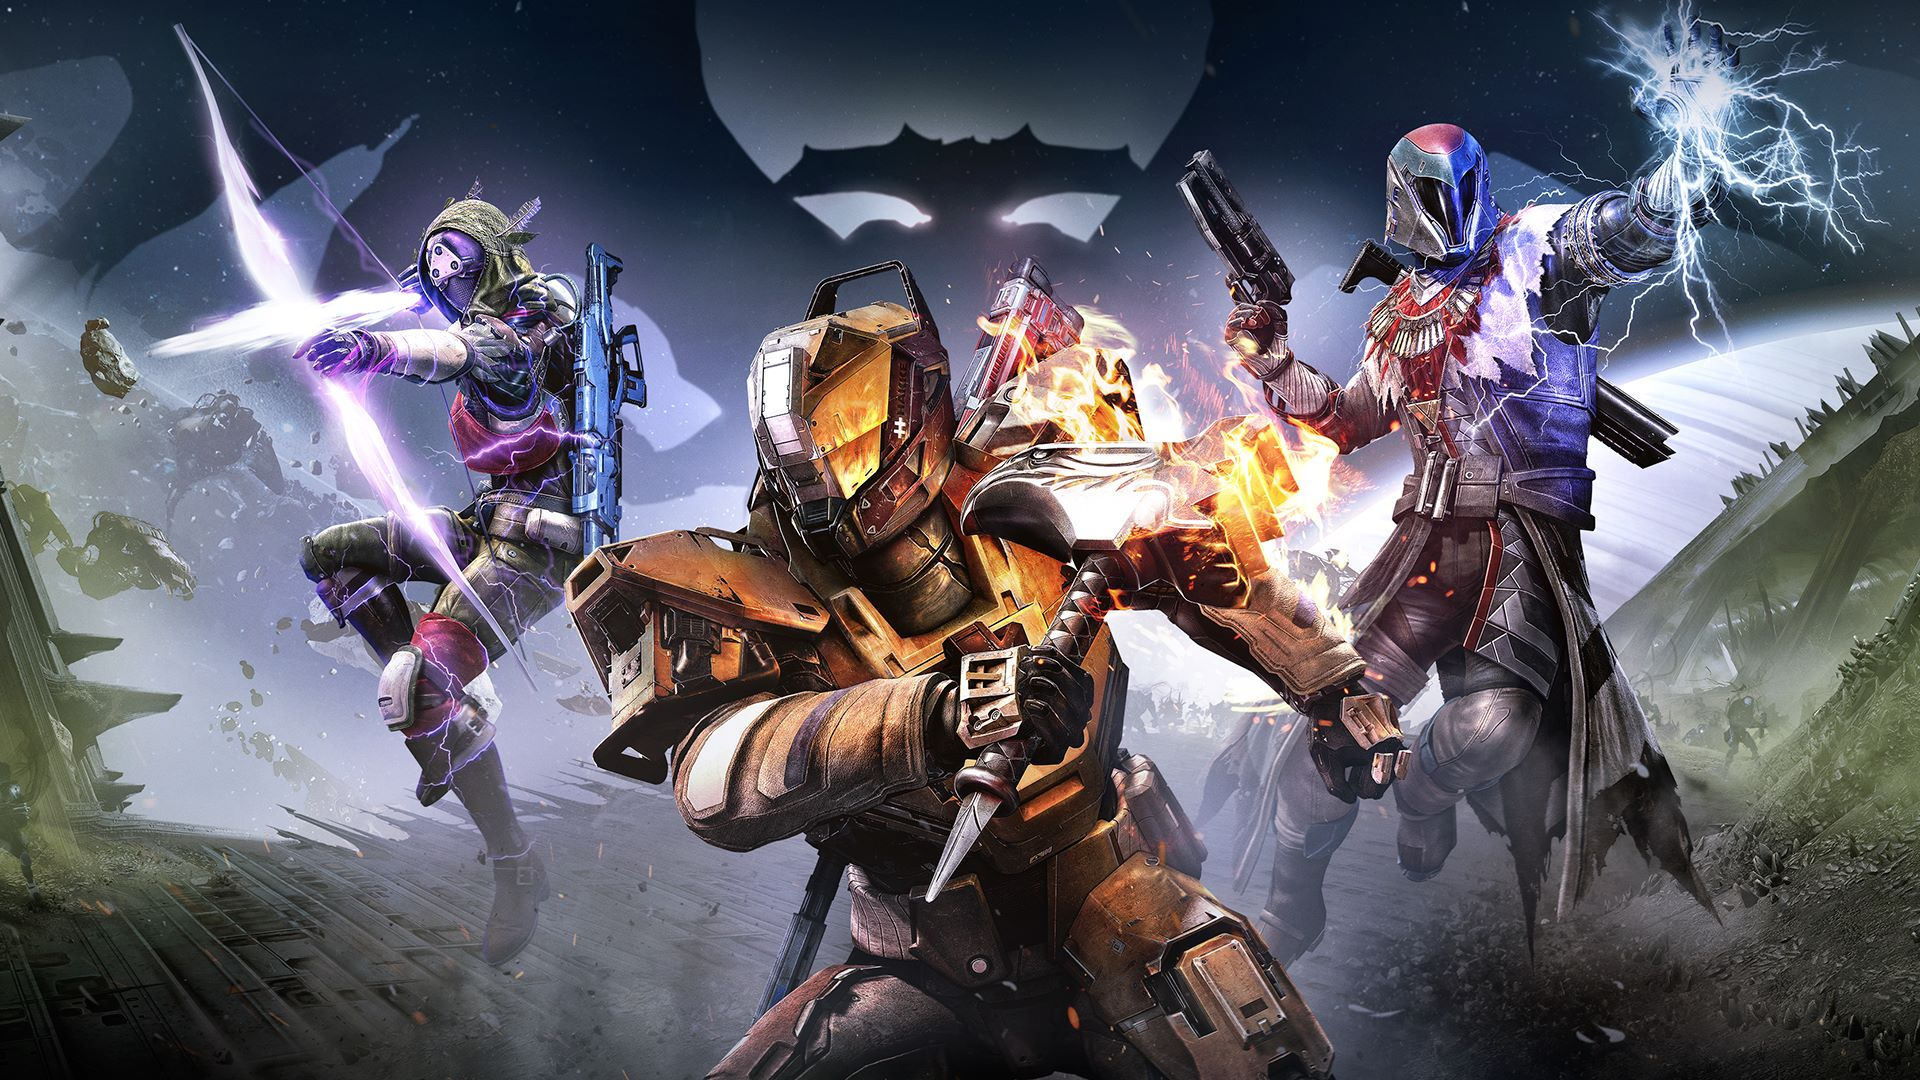 Multiple Law Firms Announce Class Action Lawsuits Against Activision Blizzard After Bungie Split